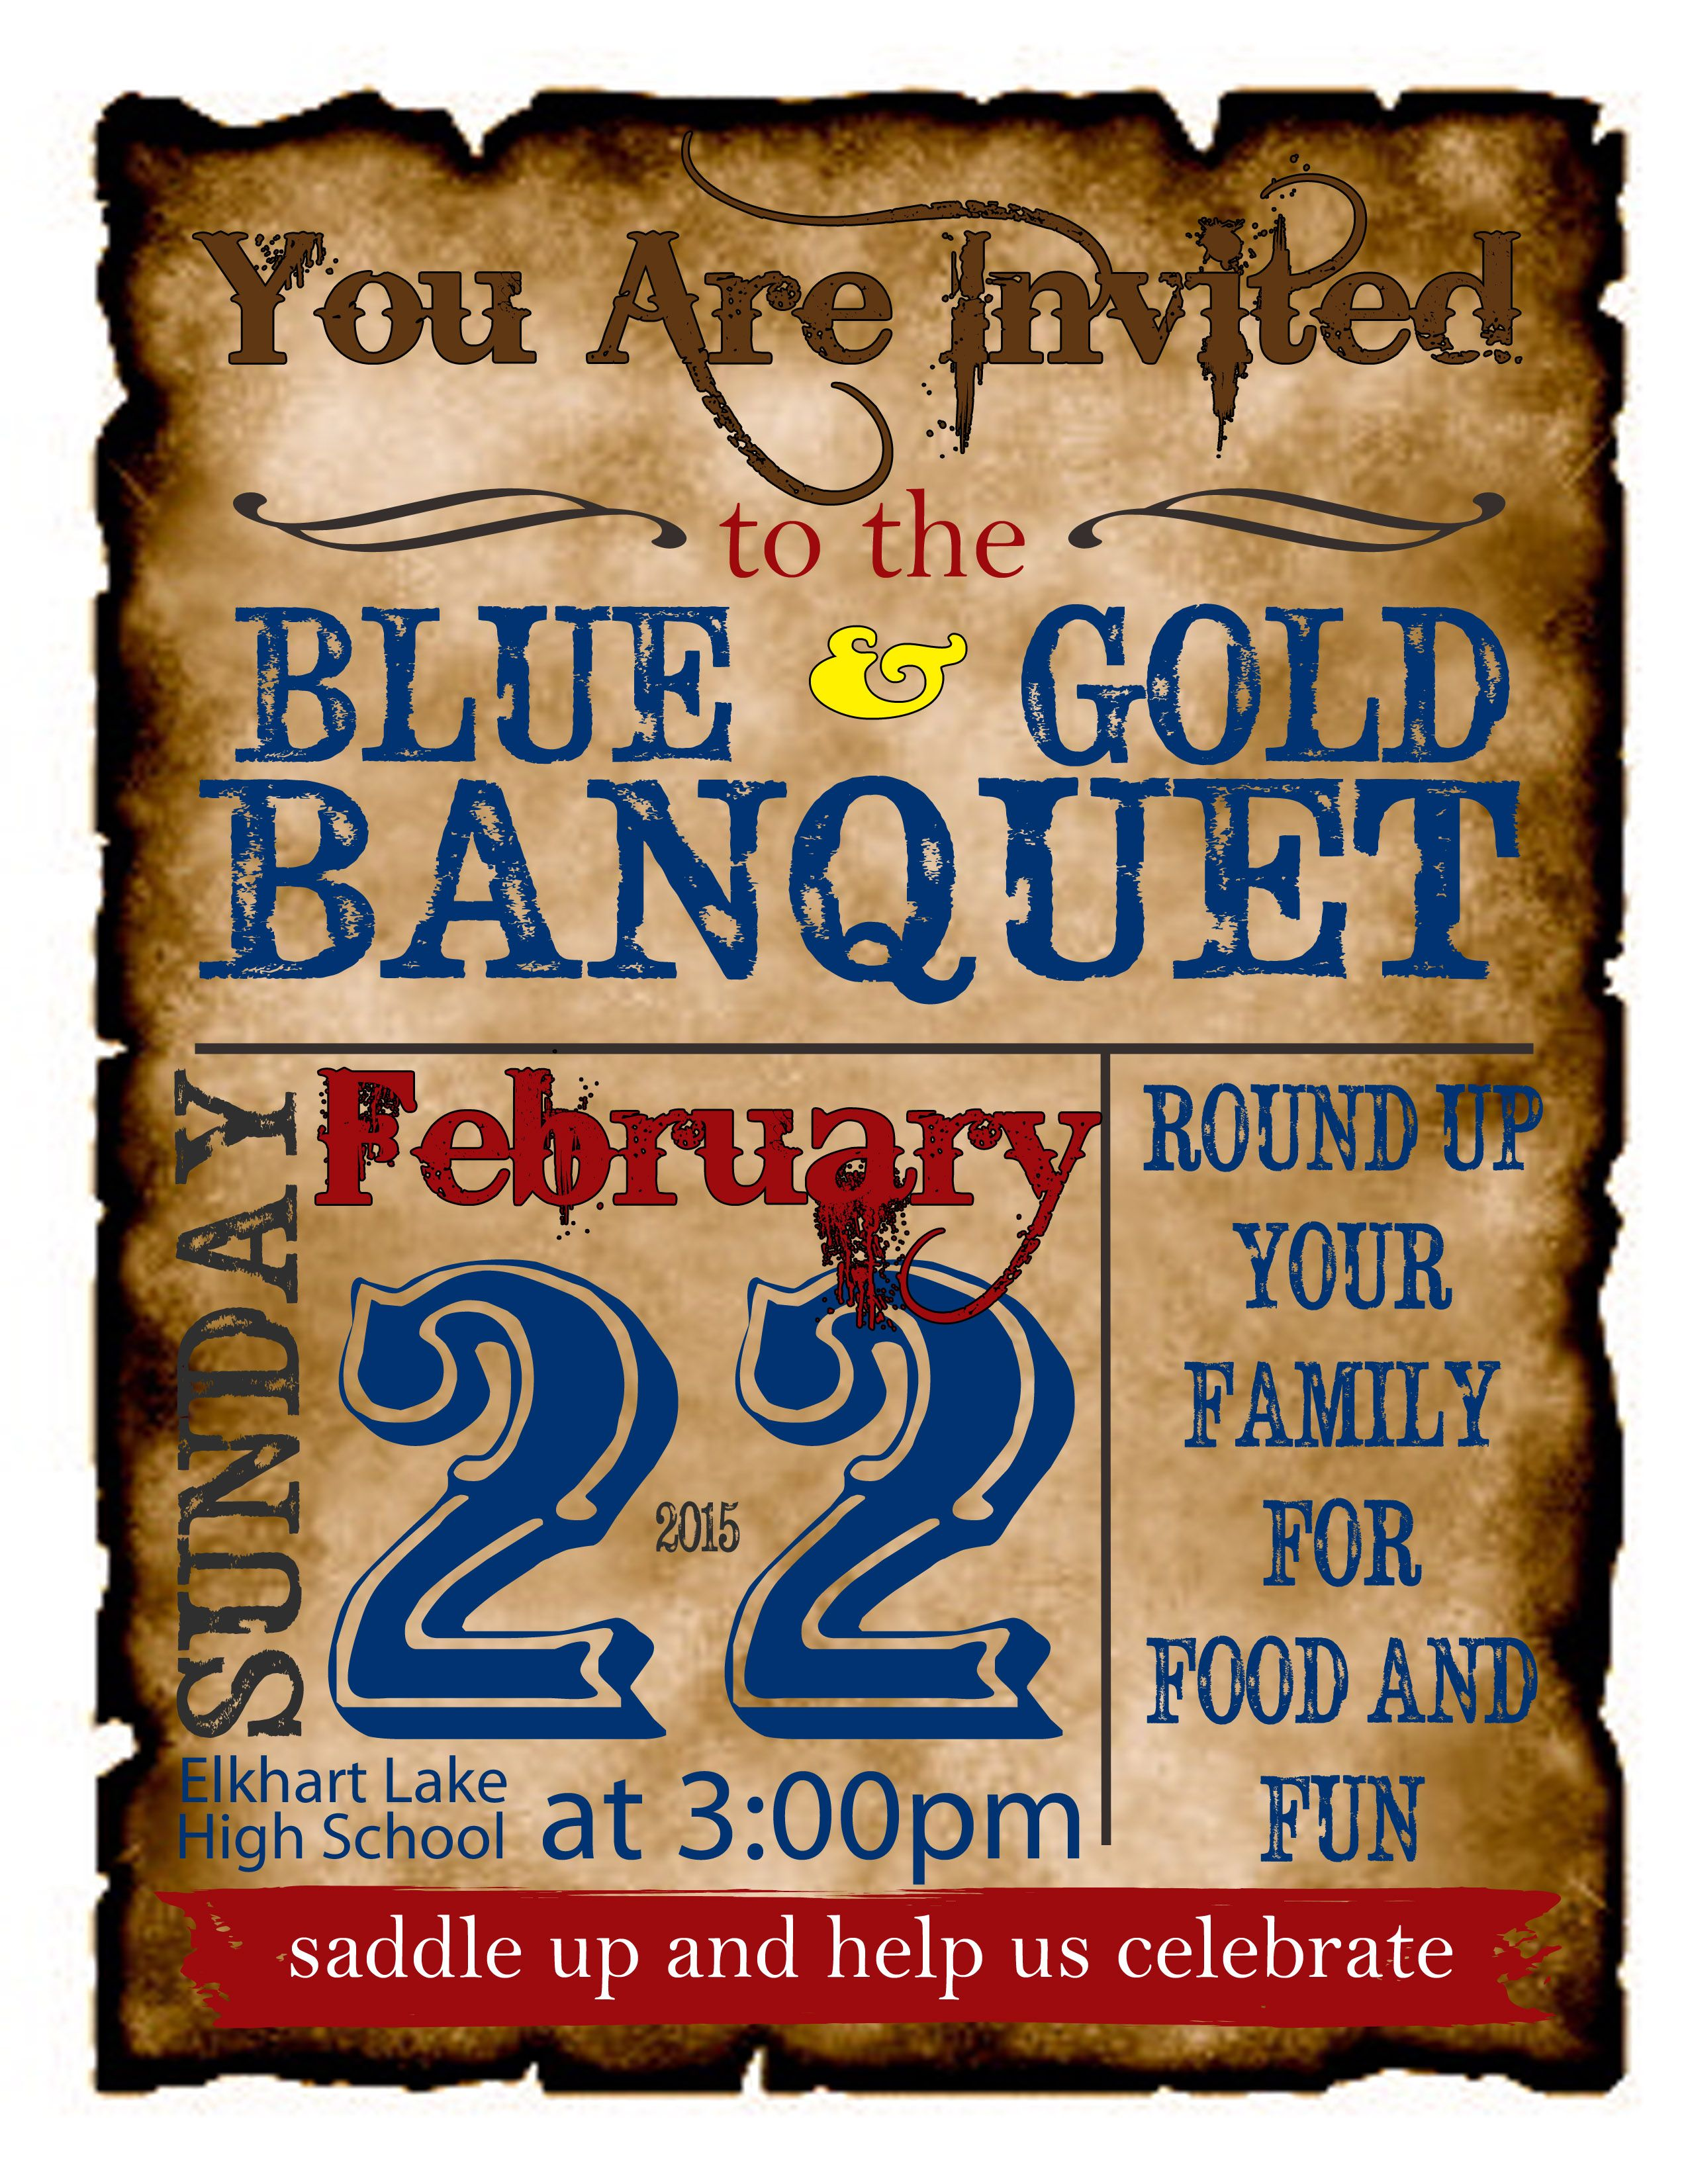 Western Theme Cub Scout Blue & Gold Banquet Invite - I printed on card stock and then cut each one out along the burned-looked edges.